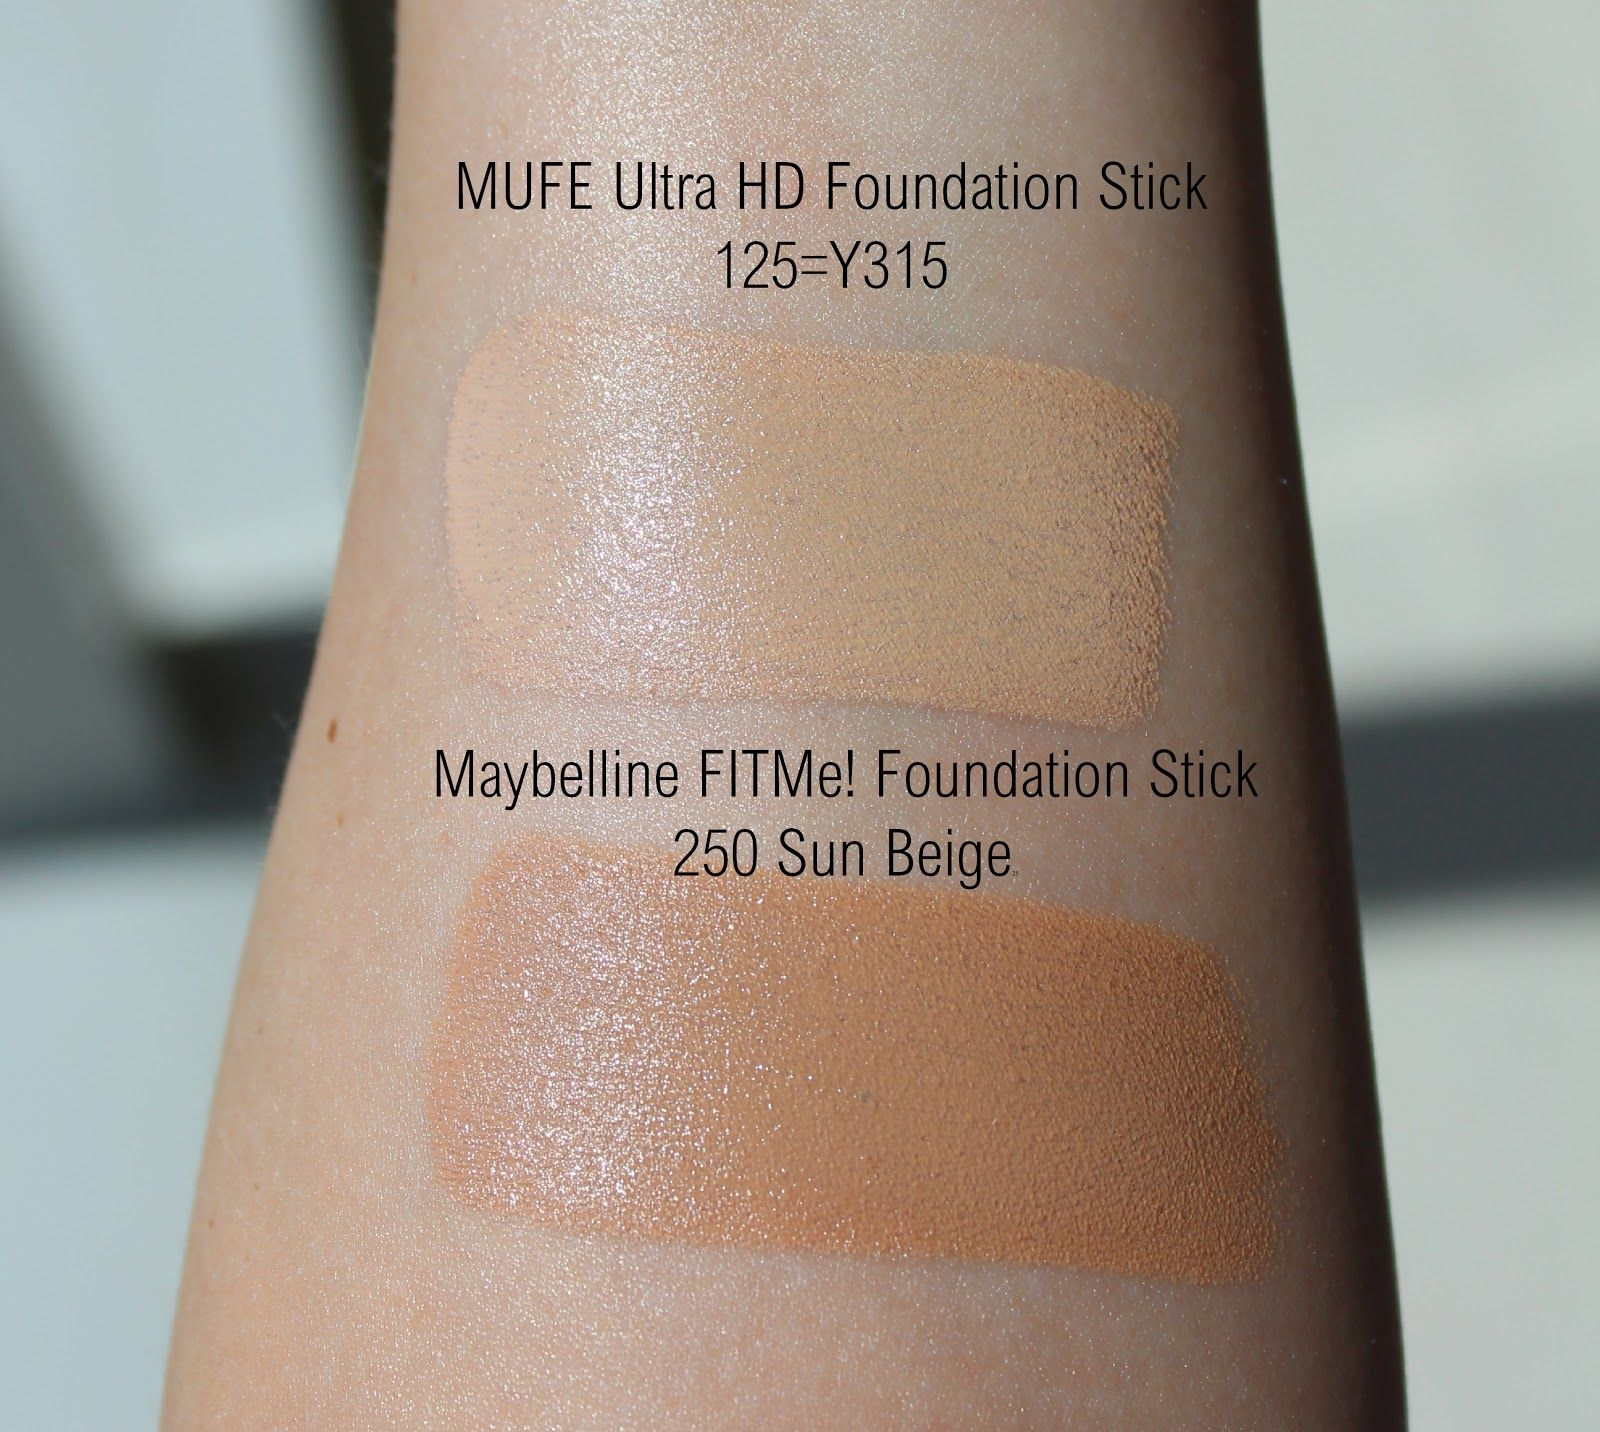 Make Up Forever Hd Foundation Stick Review And Swatches Maybelline